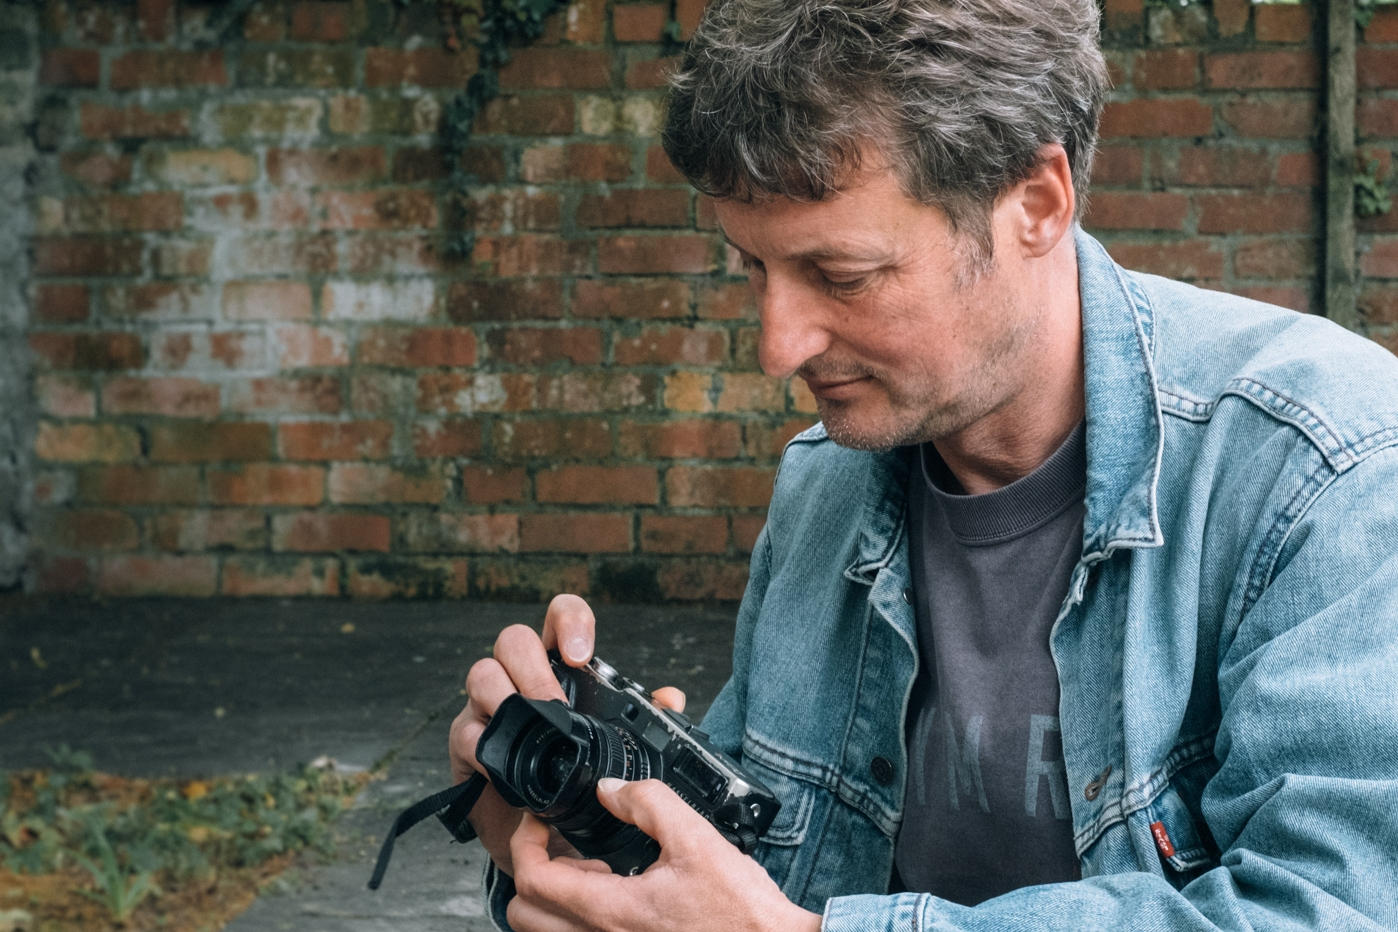 Aled with his X-Pan II - the camera he takes on all filming assignments